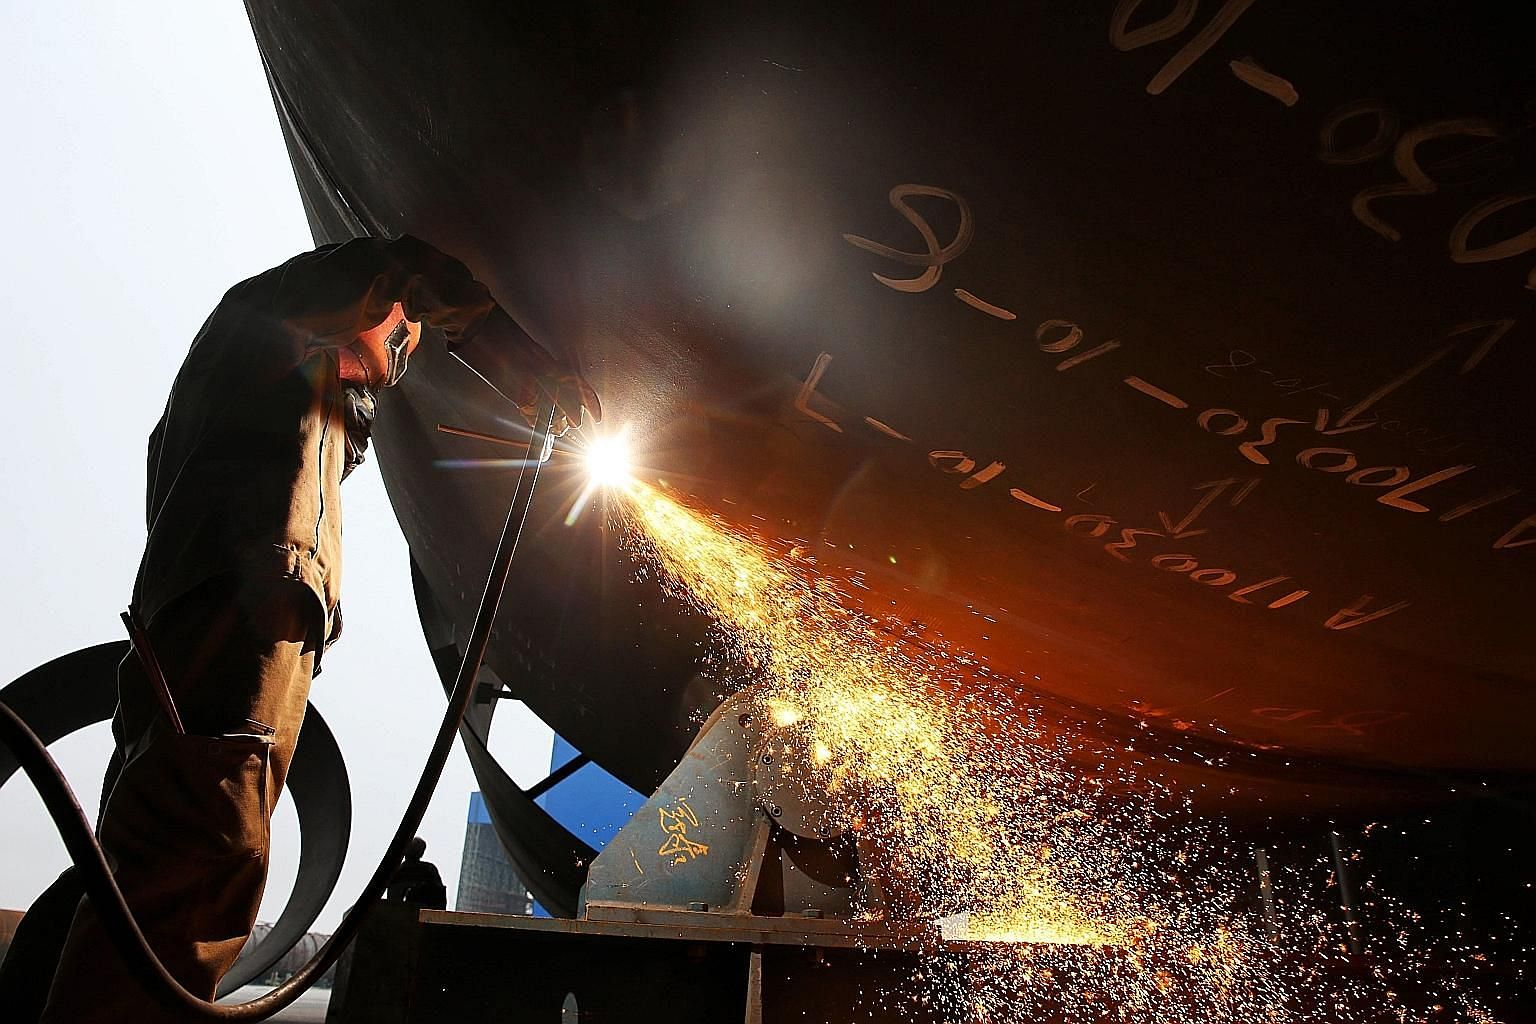 A worker welding steel at a shipyard in Nantong in China's eastern Jiangsu province. In March, US President Donald Trump announced plans to impose tariffs on Chinese imports - mainly steel and aluminium. Now, Washington and Beijing have agreed to sto